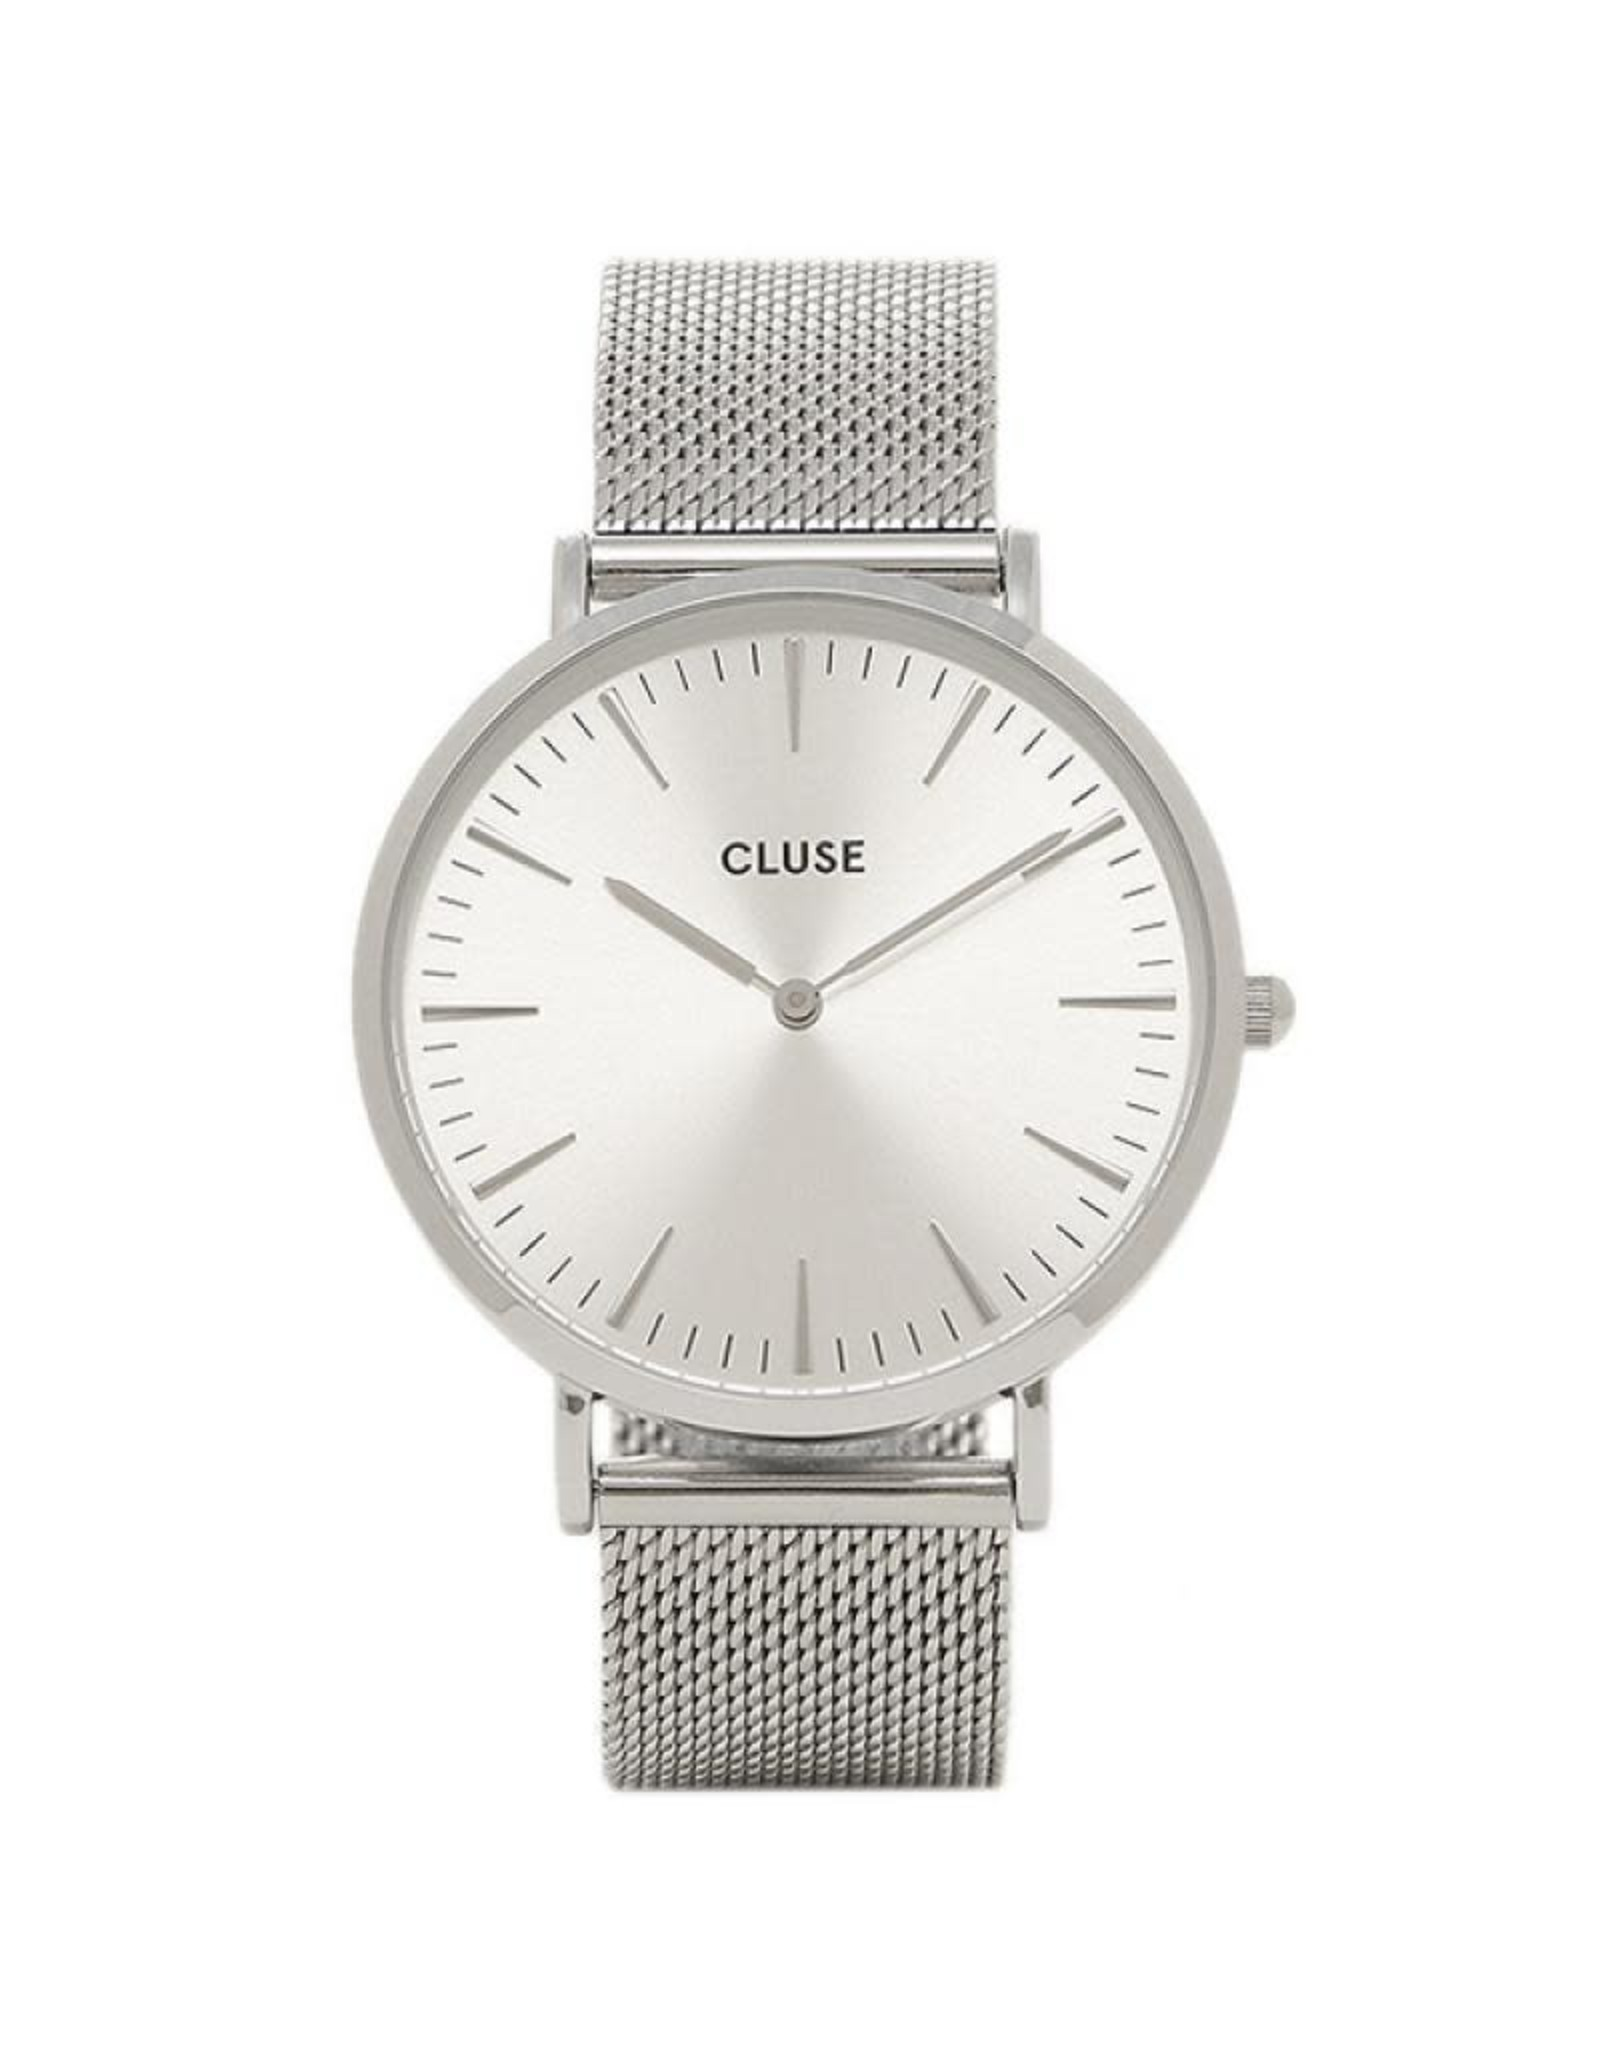 Cluse Cluse CL18114 Boho Chic Staal Mesh Band Zilver wijzerplaat 38mm